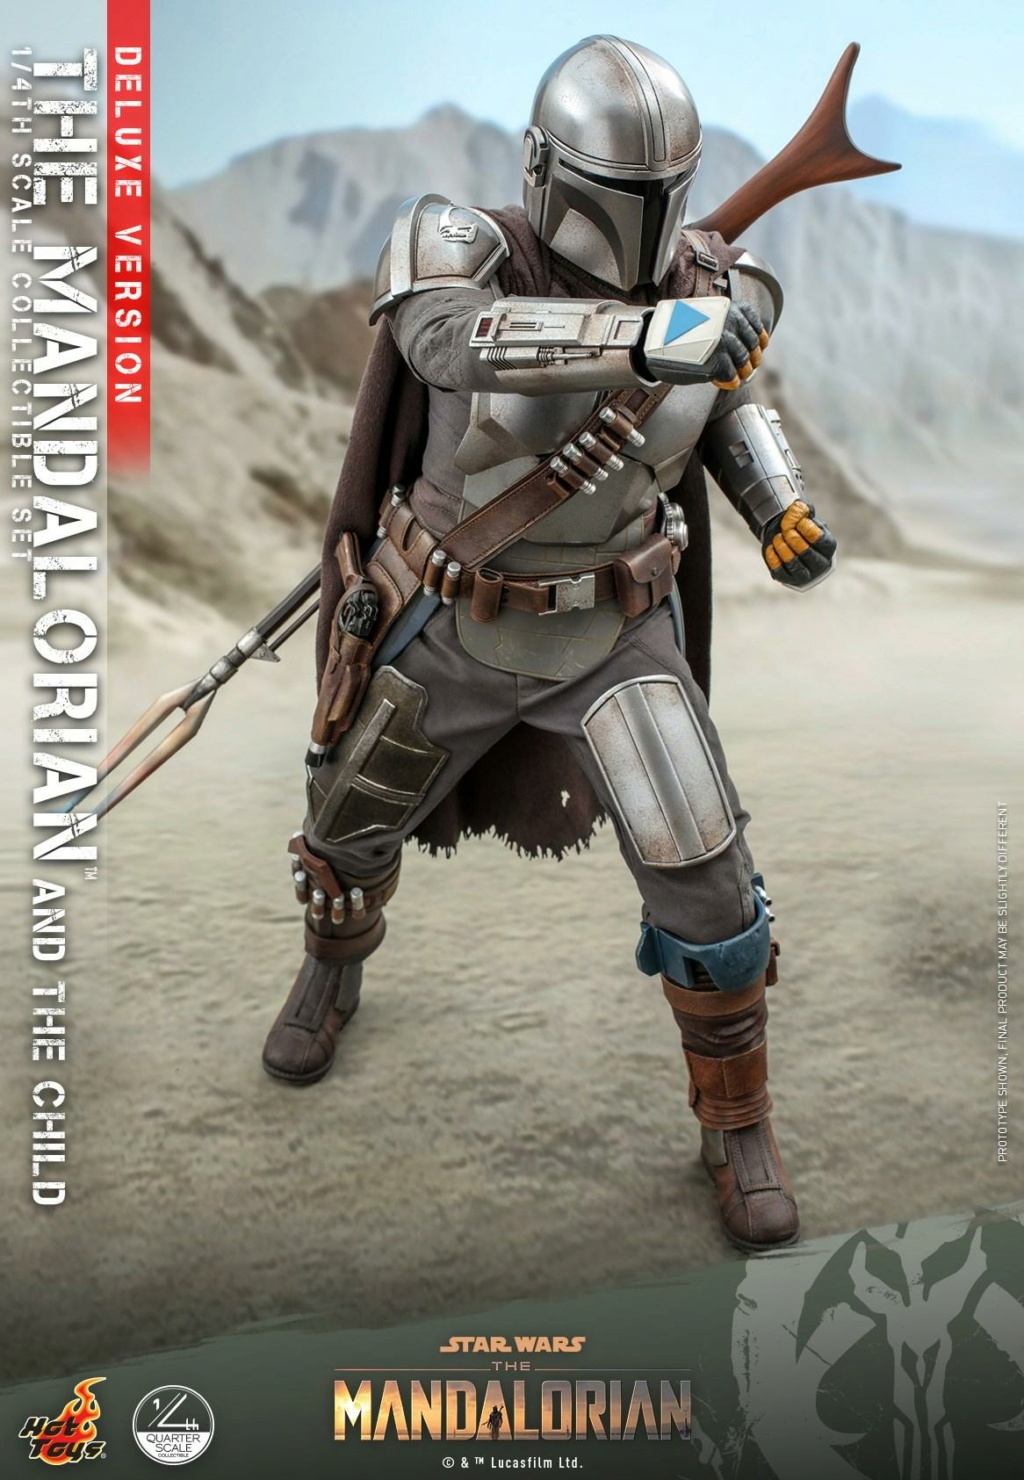 The Mandalorian & The Child Set (Deluxe) 1/4th - Hot Toys 1819